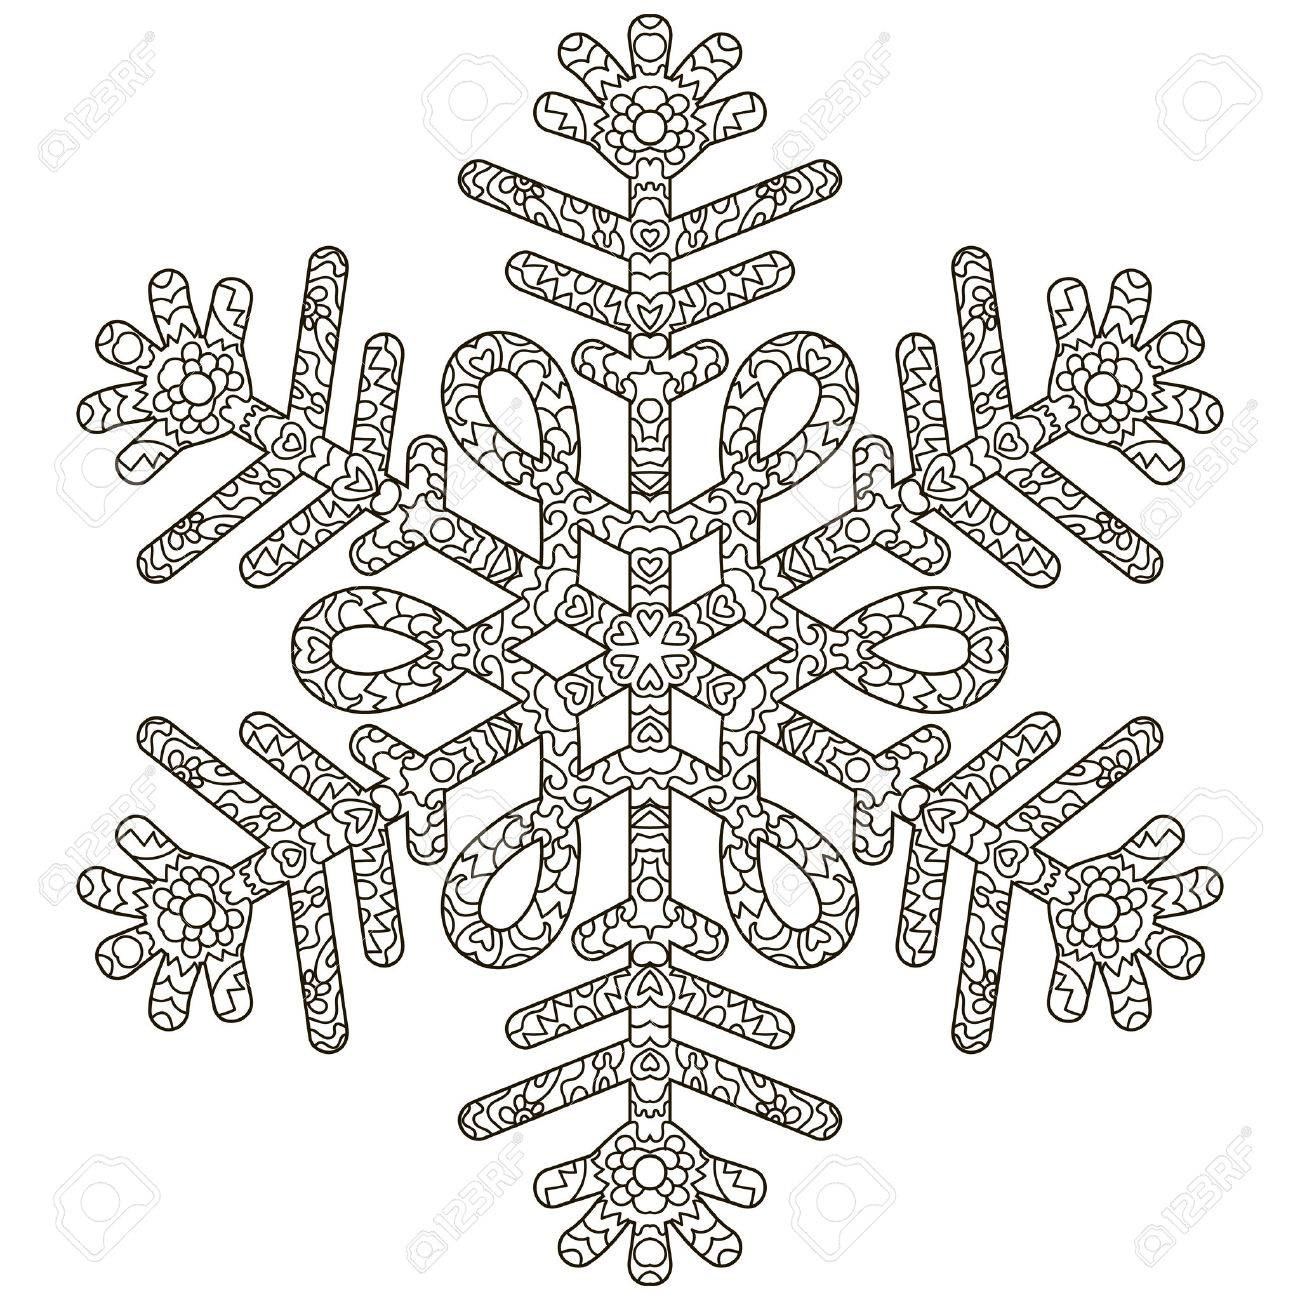 antistress snowflake. Template for cover, poster, t-shirt or..